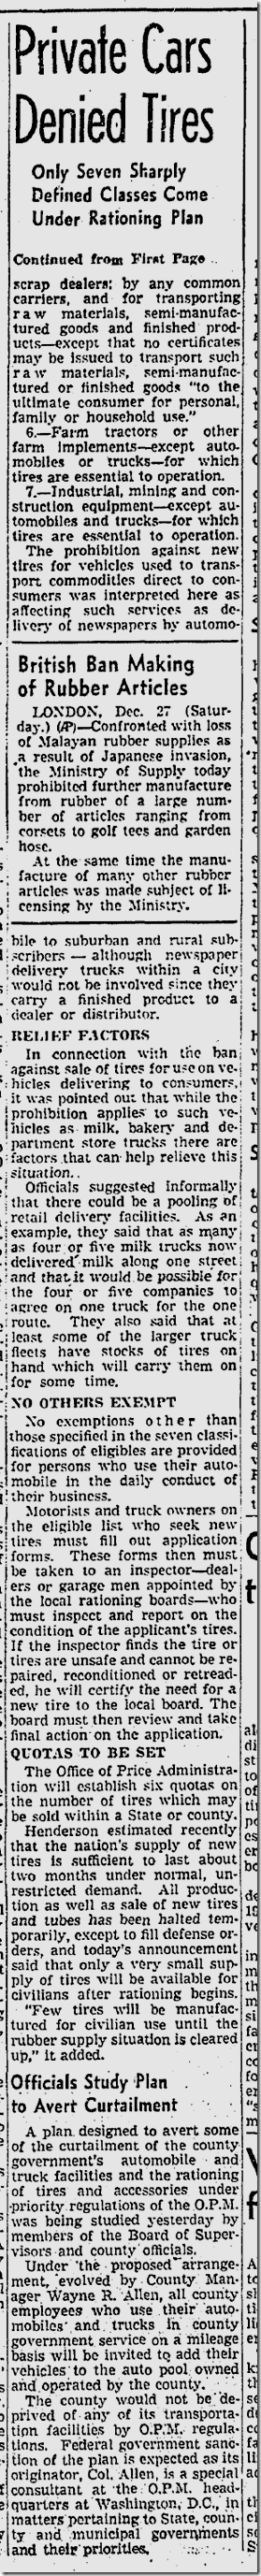 Dec. 27, 1941, Tire Rationing